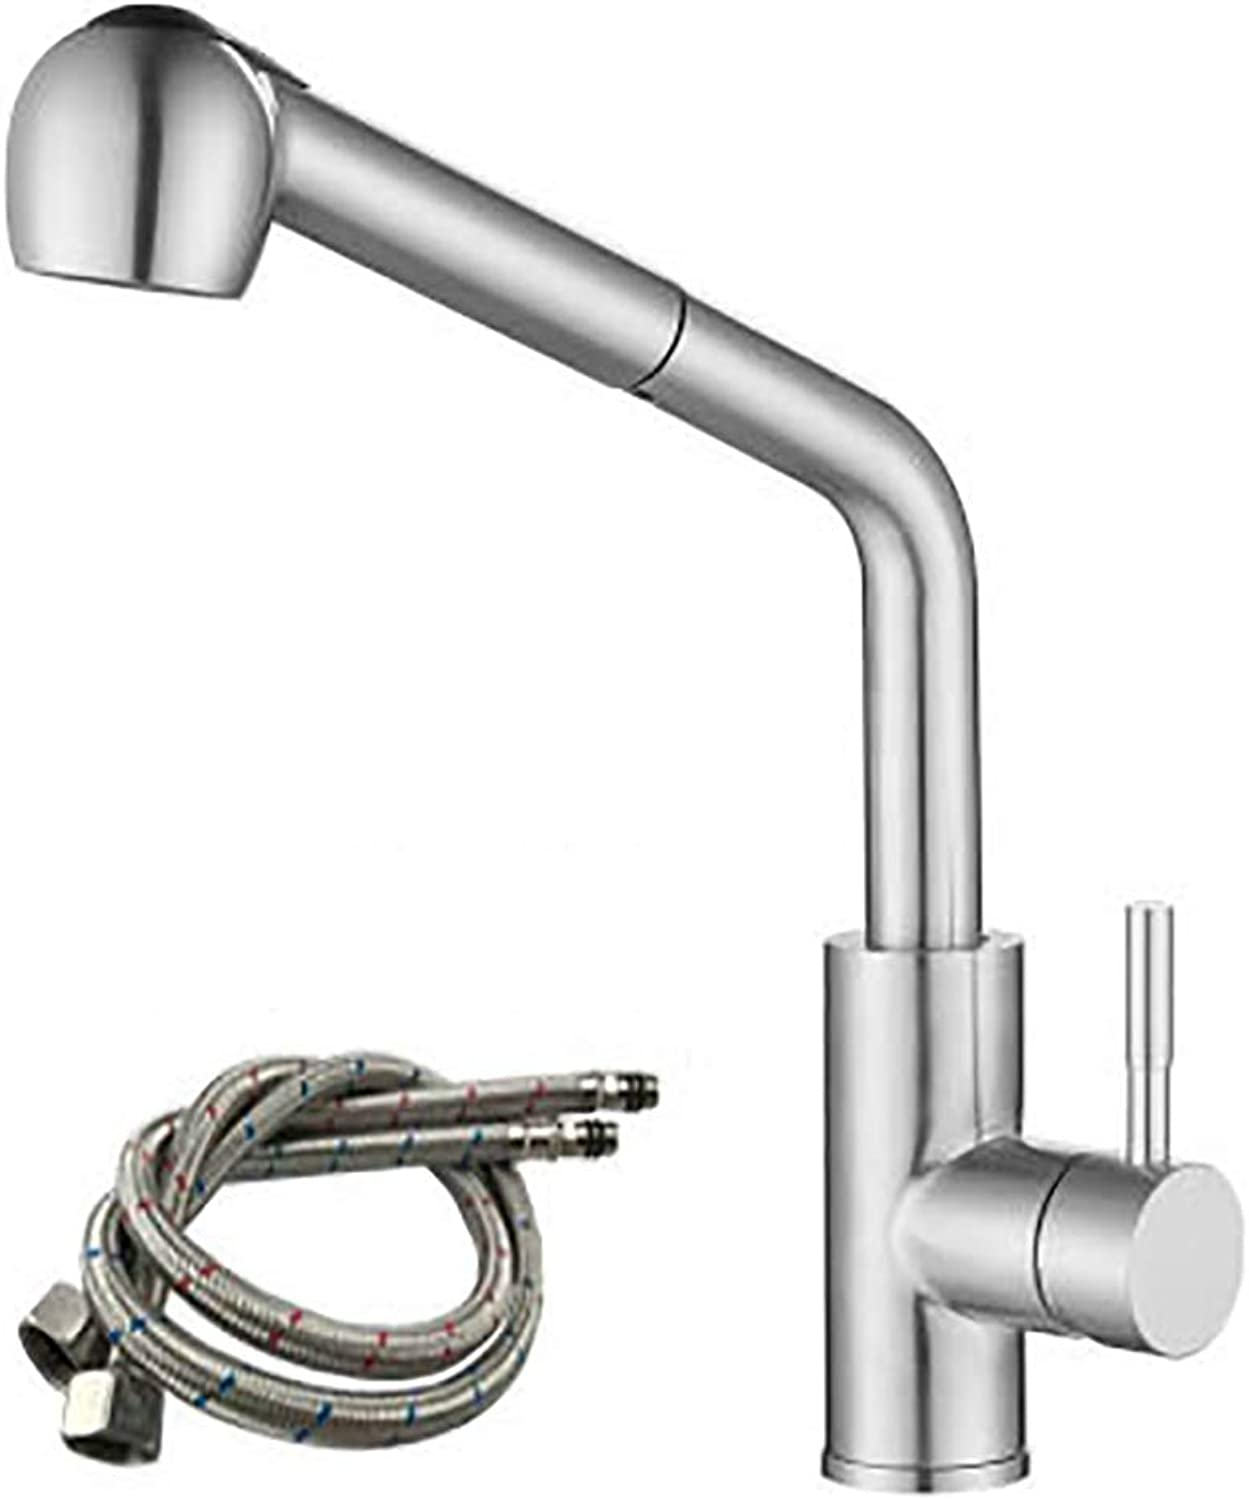 Kitchen Pull-Down Faucet, Sink Pull Out Mixer Tap Single-Handle Extendable redation Rust-Resistant Modern-B